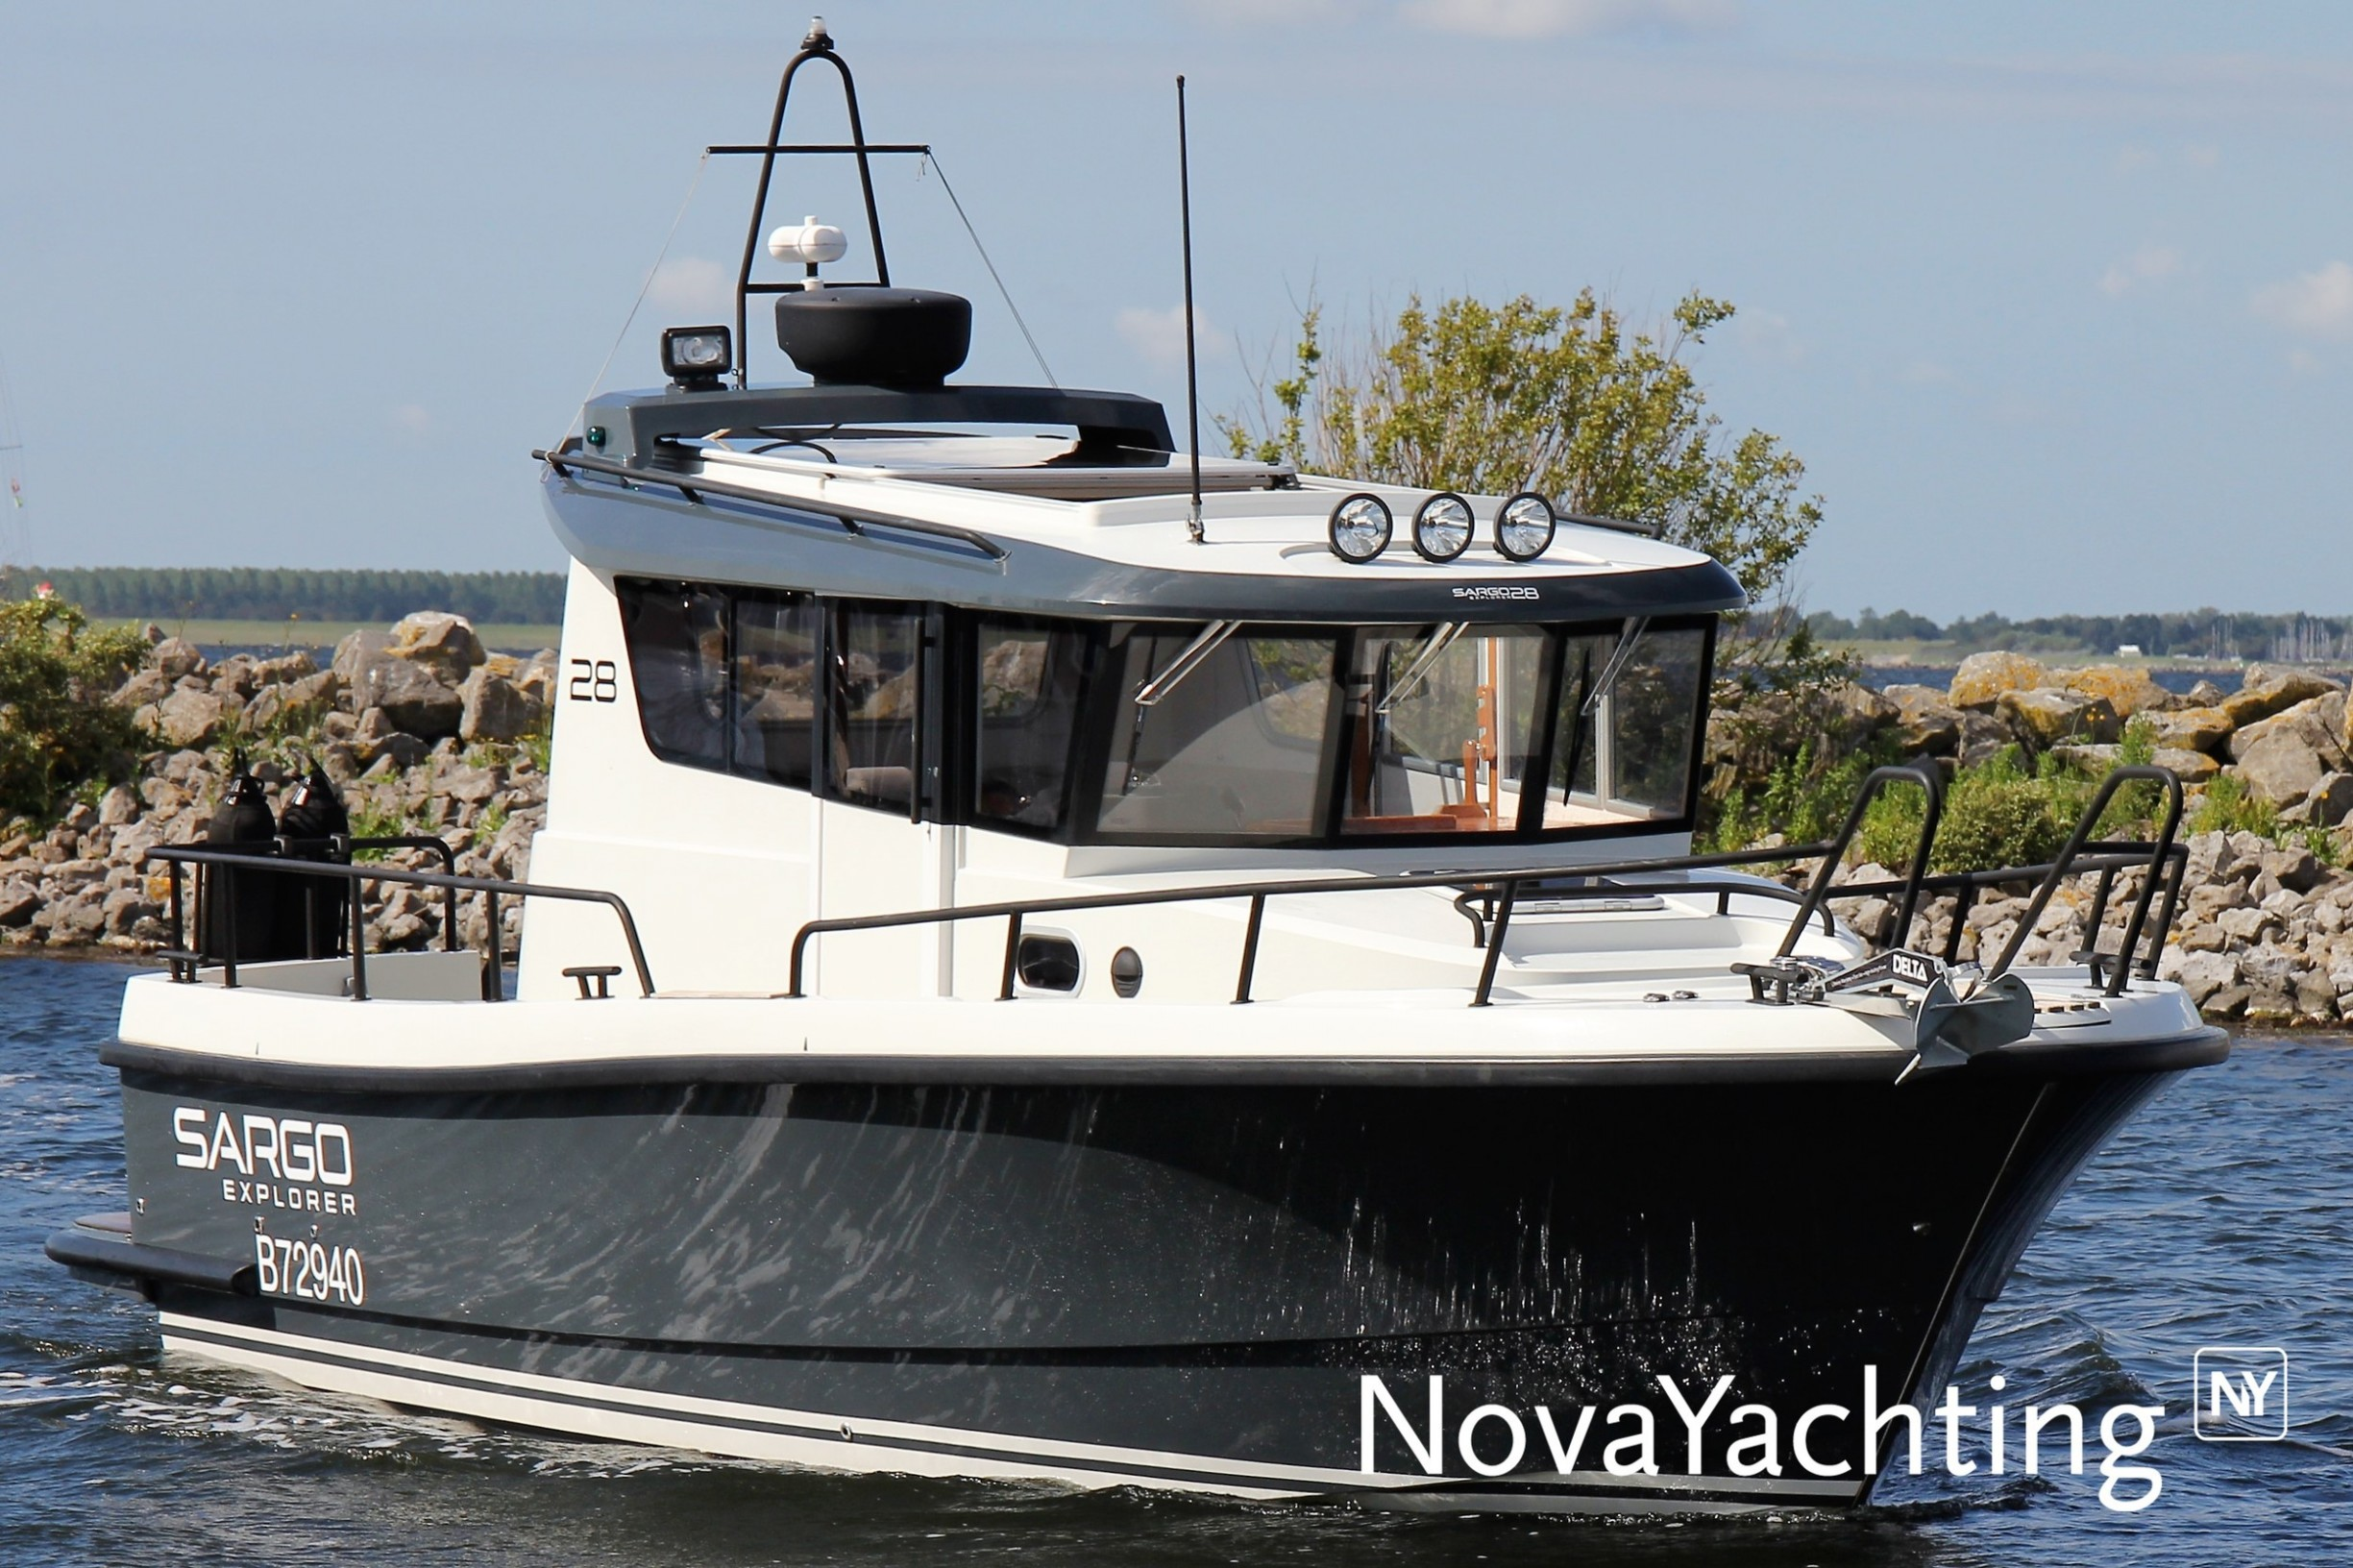 Sargo 28 Explorer for sale in Netherlands for €139,000 on volcano map, mariana trench map, peninsula map, sailing map, massif map, sound map, channel map, ocean map, estuary map, coral reef map, seabed map, mediterranean map, caribbean map, gulf map, glacier map, bay map, south east asia map, world map, lagoon map, lake map,